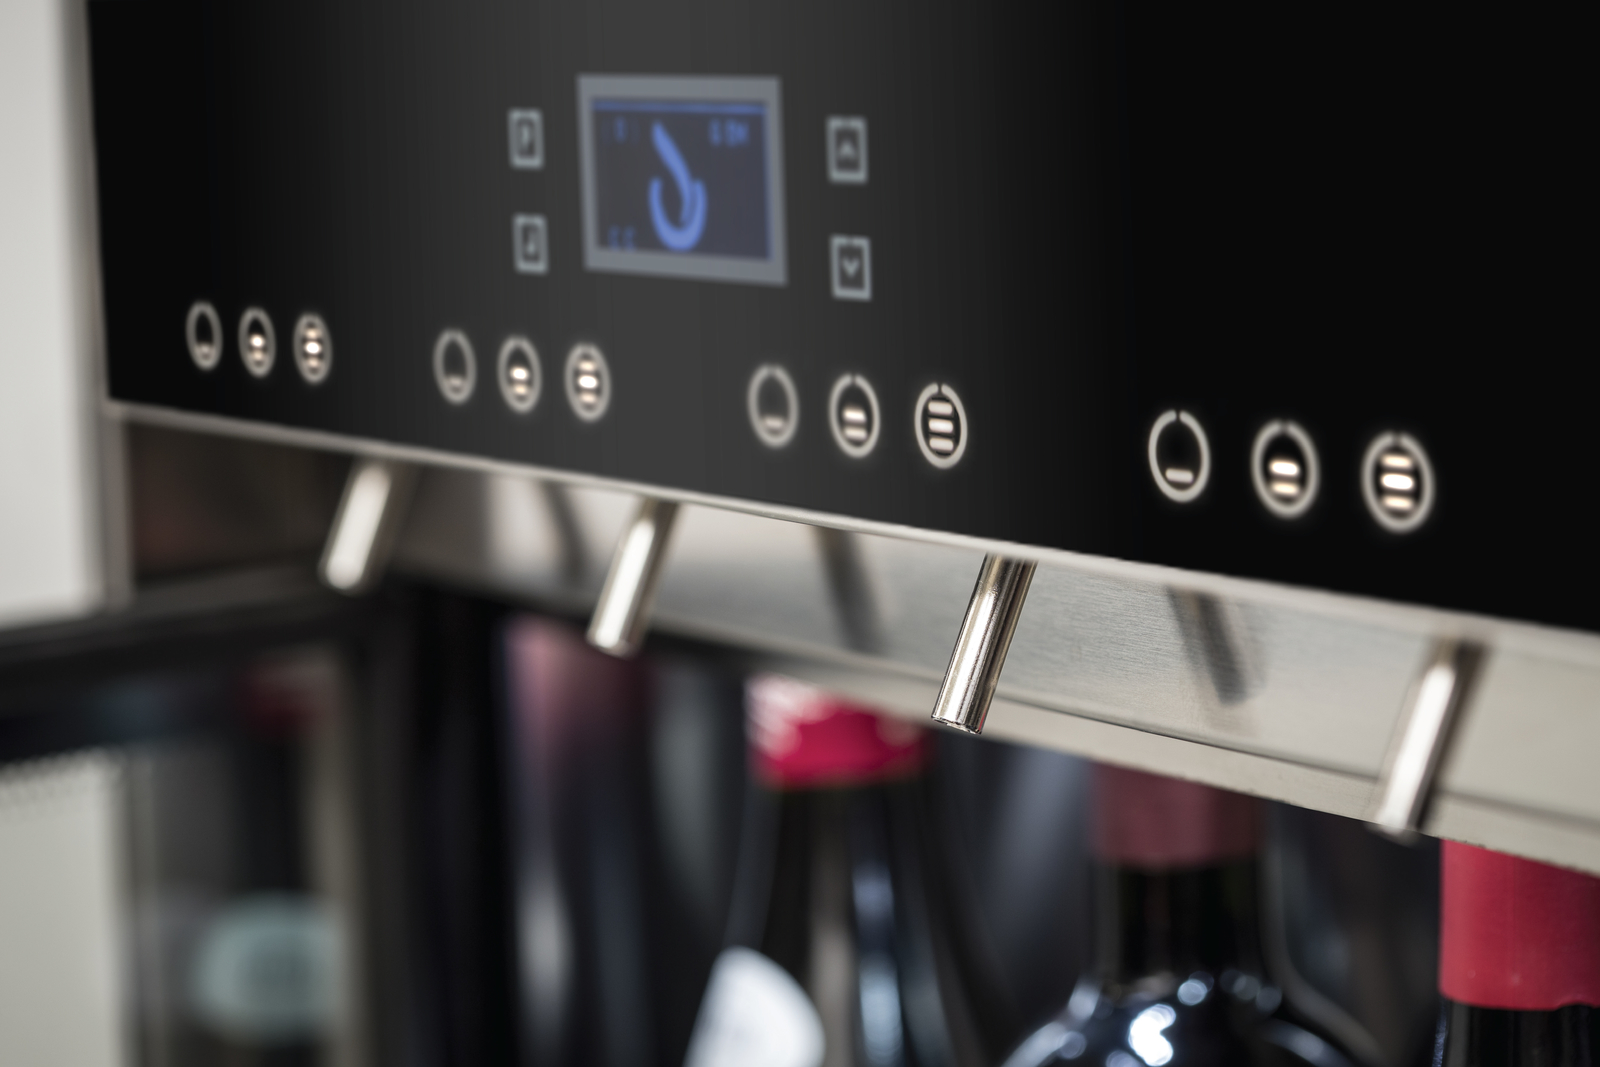 Dispensador de vinho Wineemotion Quattro Series 2